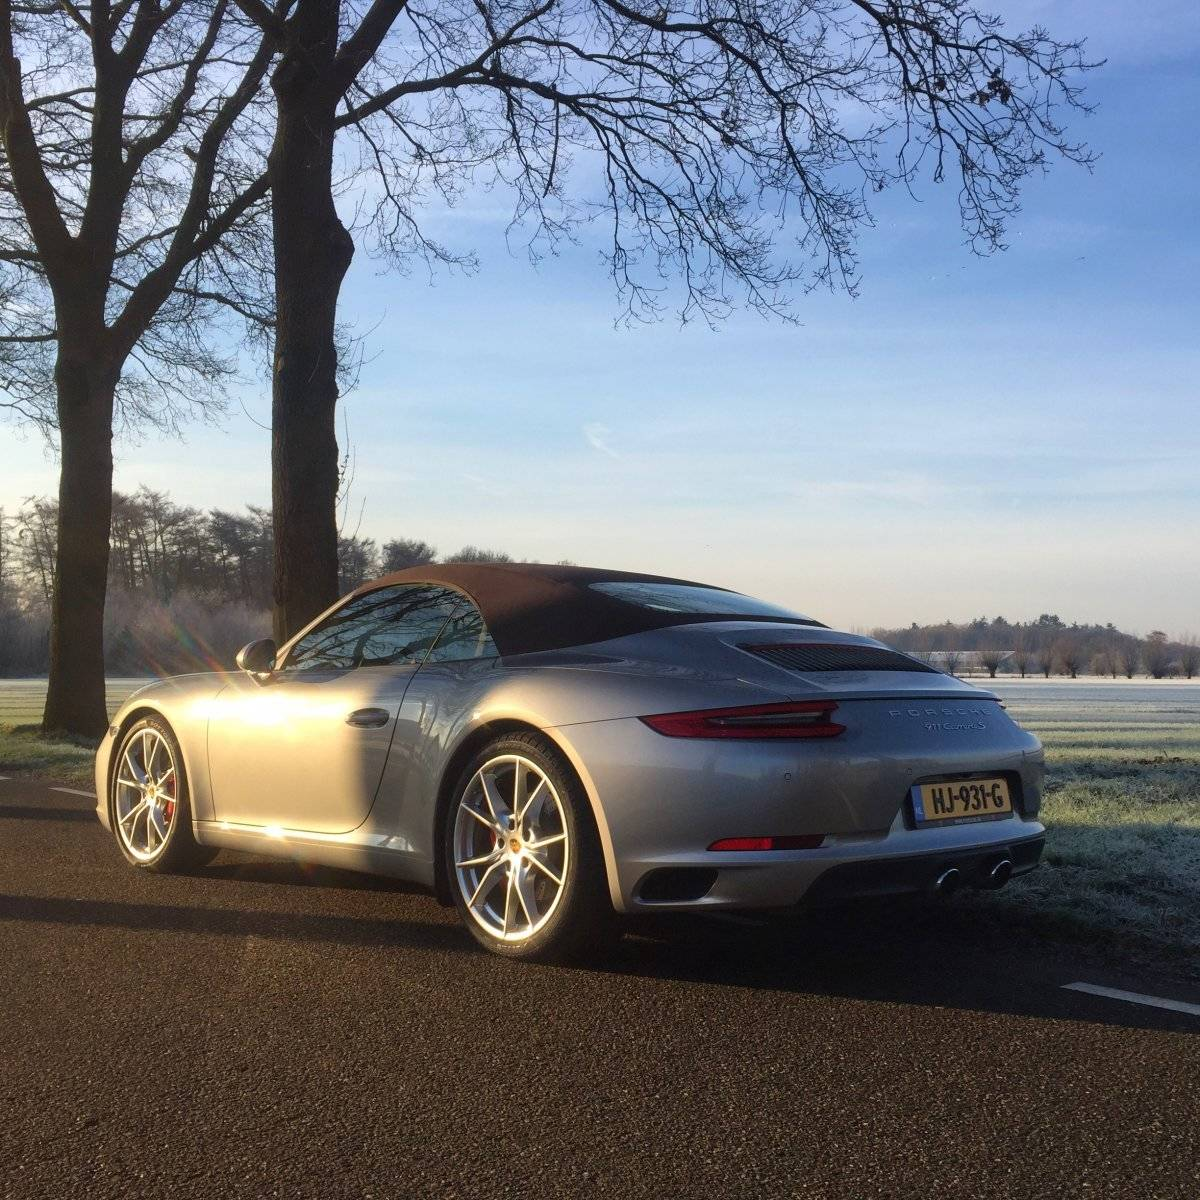 Porsche 911 Carrera S - Training - Manify3